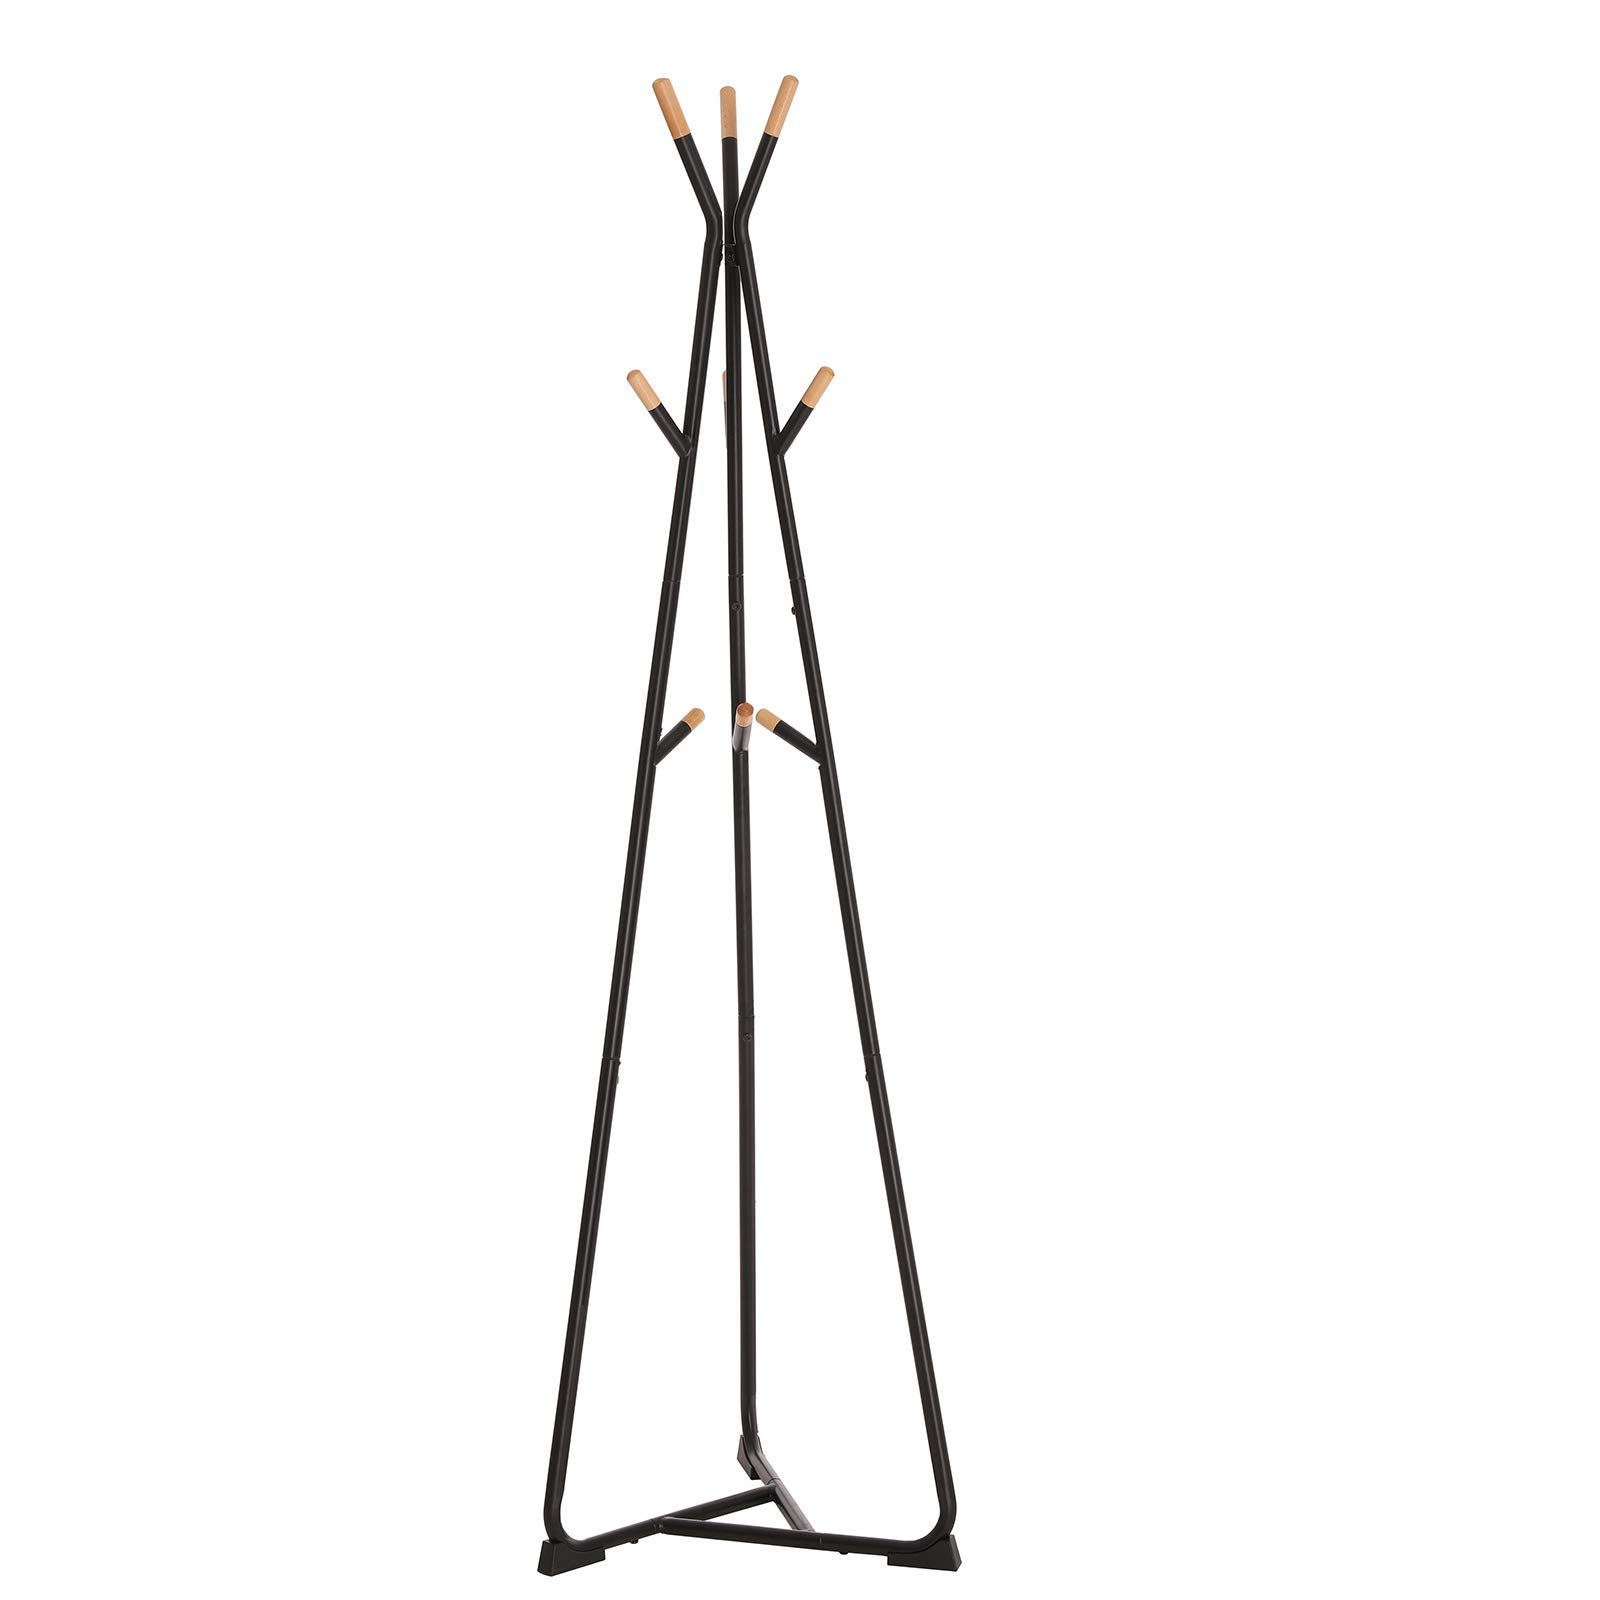 SONGMICS Coat Rack Stand, Coat Tree, Hall Tree Free Standing, with 9 Beech Wood Hooks, for Clothes, Hat, Bag, Black, Natural Grain, URCR15BY